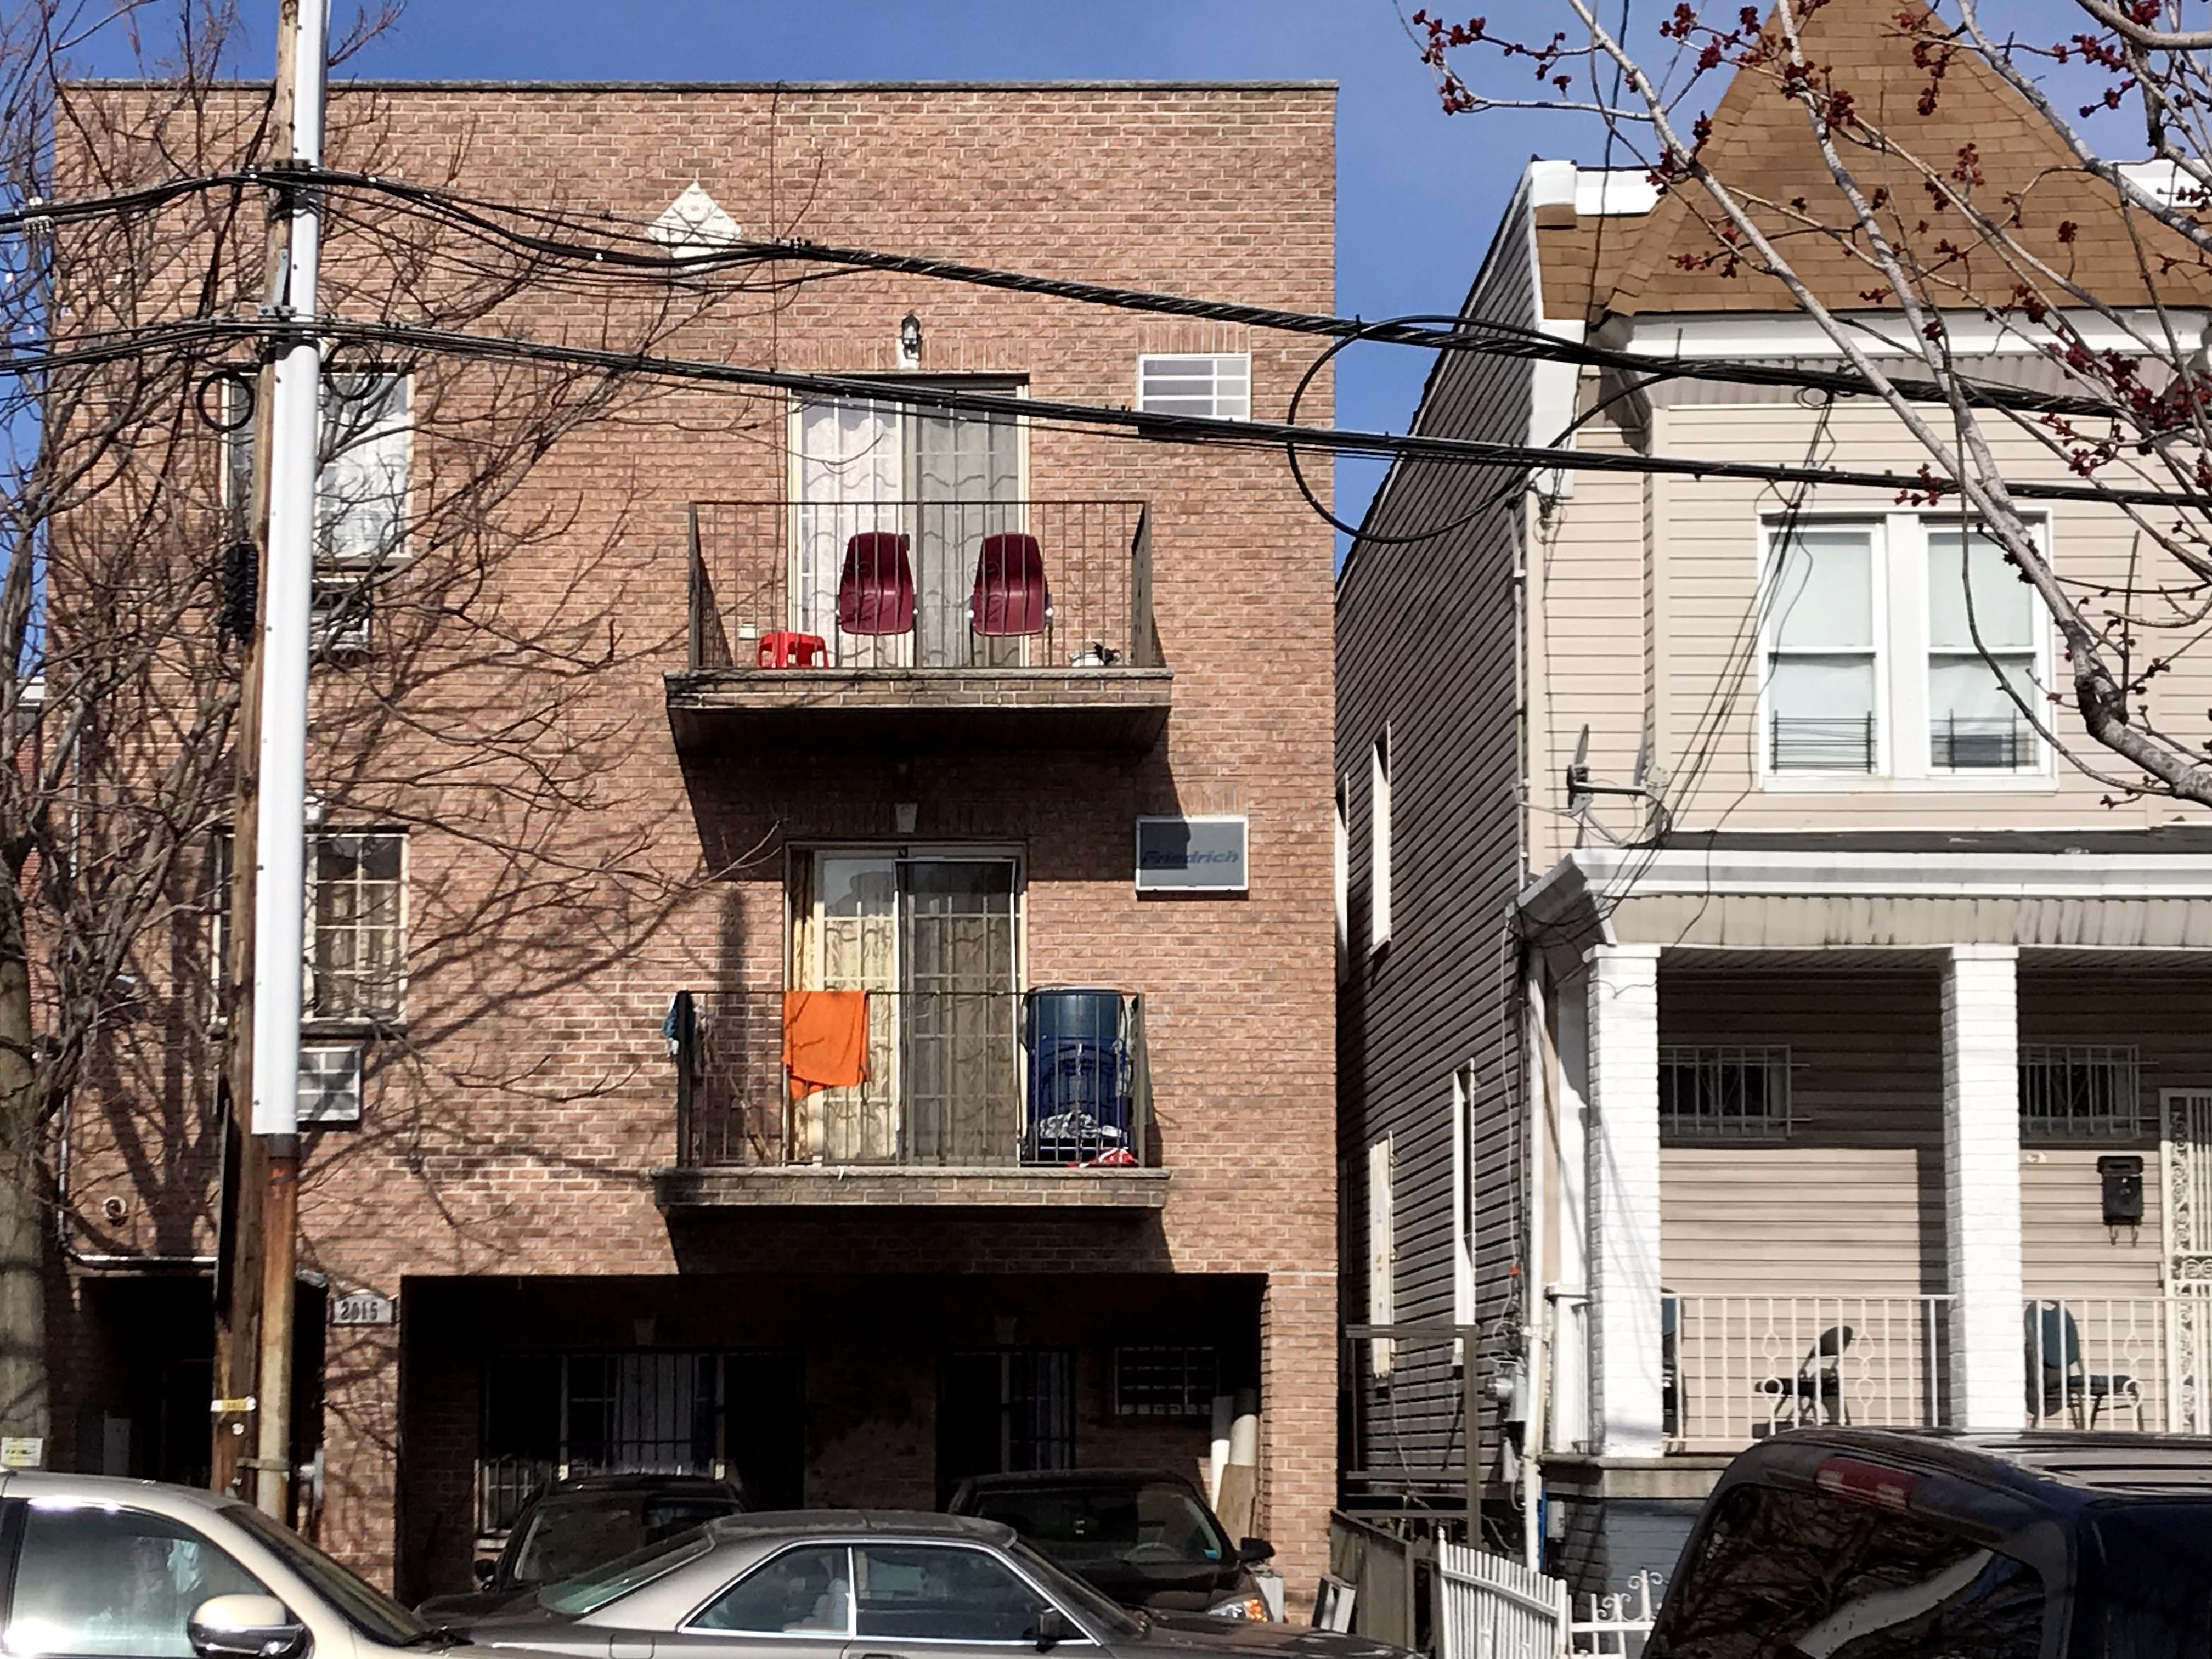 LichtensteinRE.com Just Sold 3-Family Property for $948,888 in Opportunity Zone in Tremont, Bronx